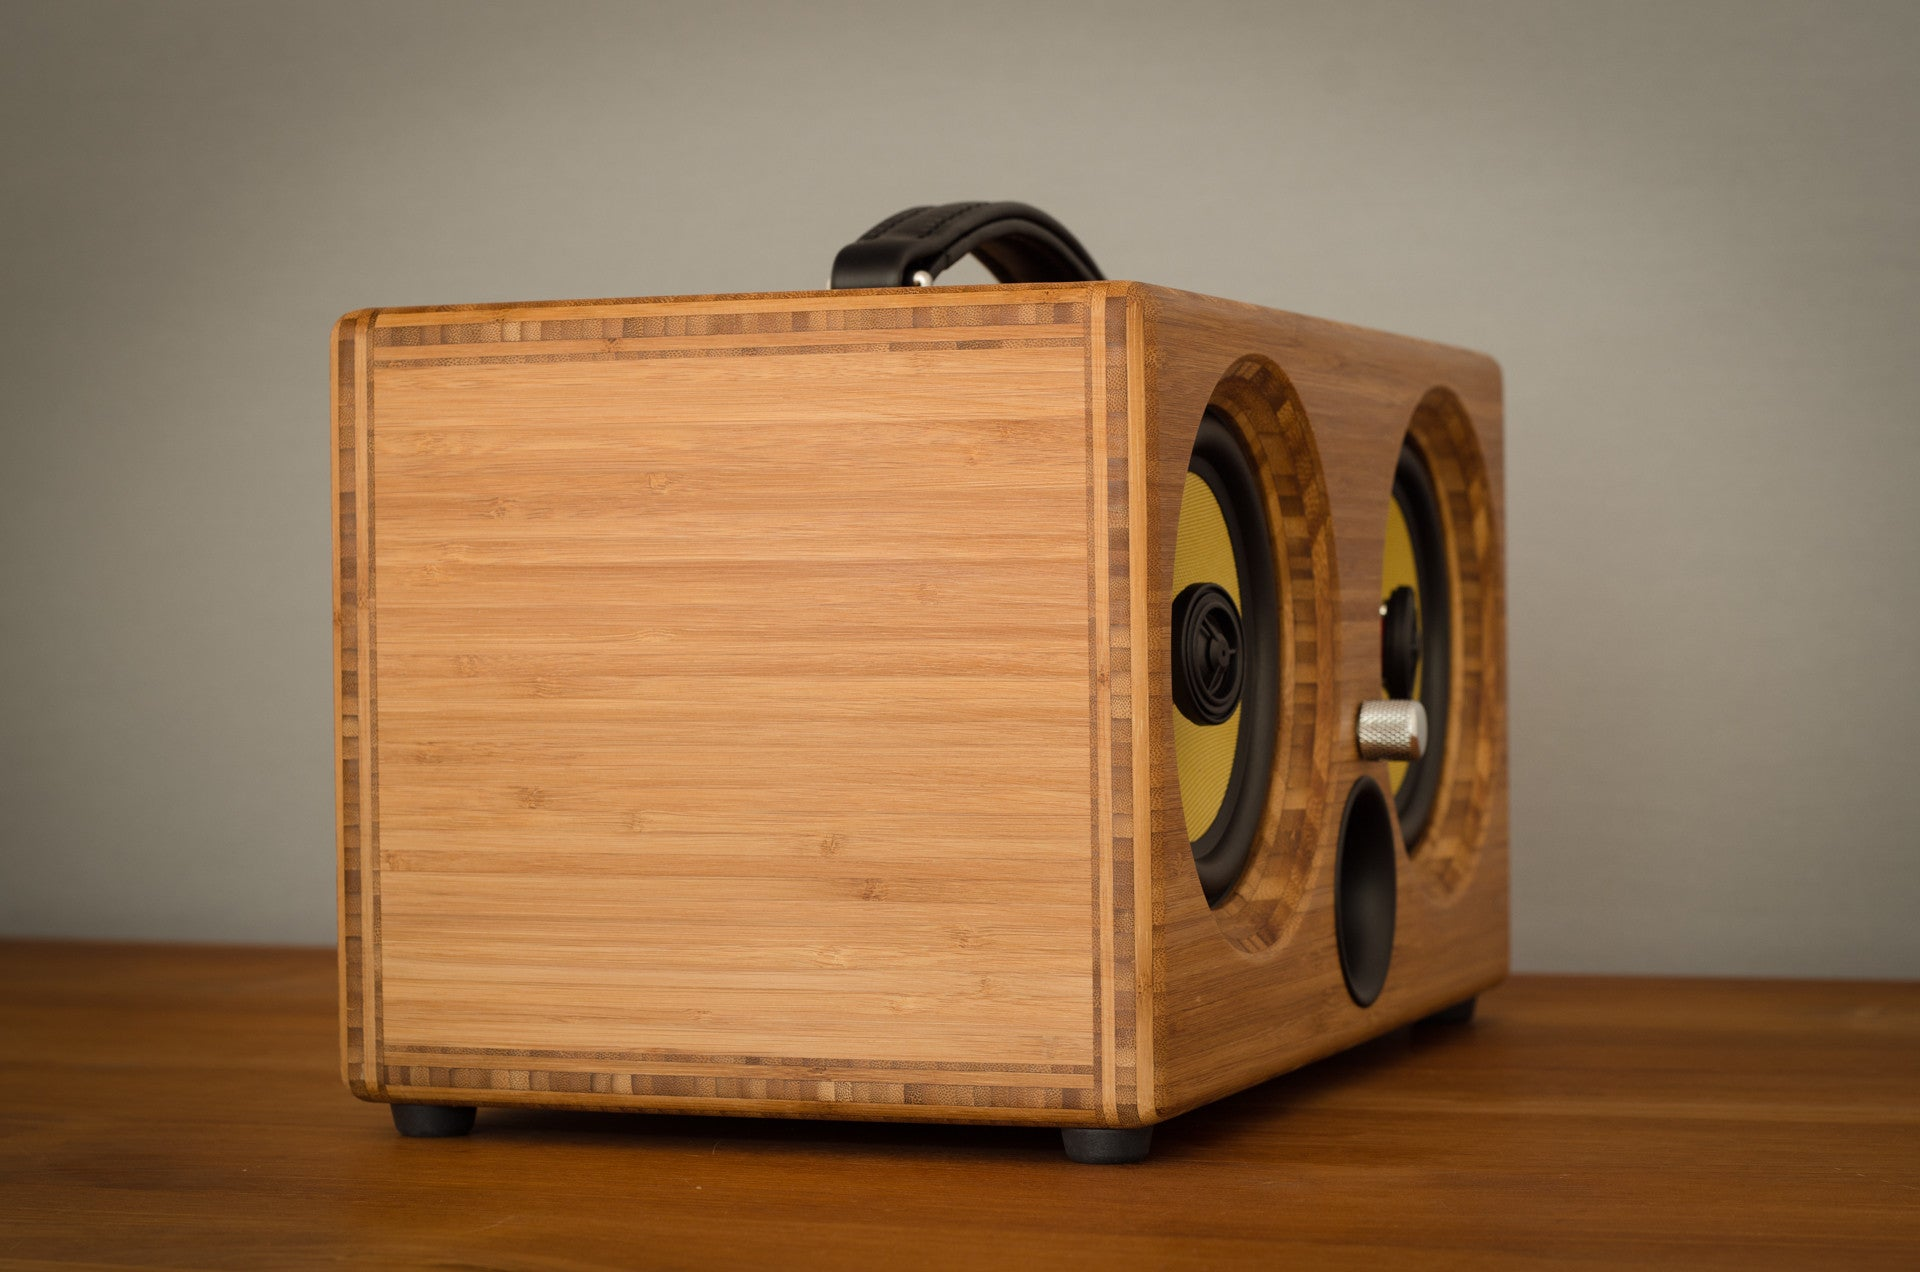 Ibox Xc Pressed Caramel Bamboo Wireless Bluetooth Speaker